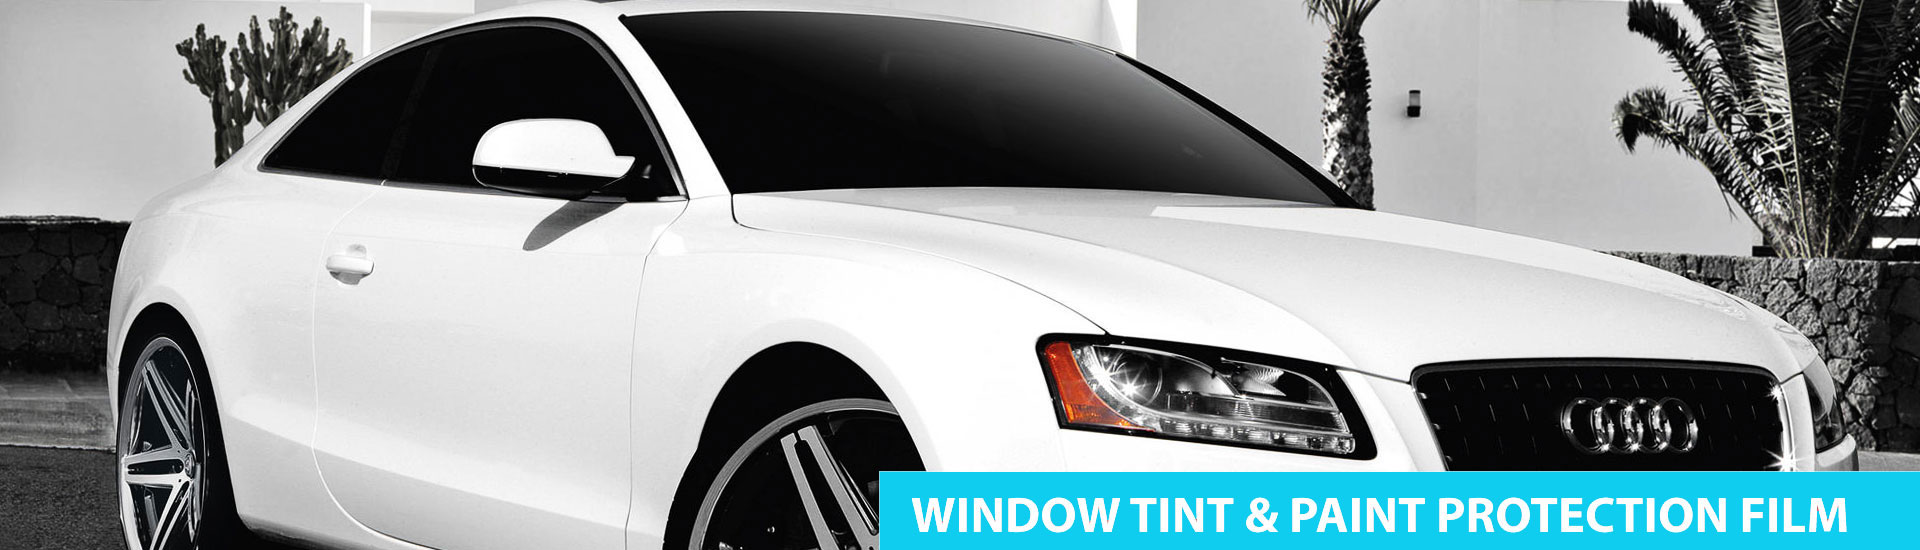 window-tint-banner-austin-texas